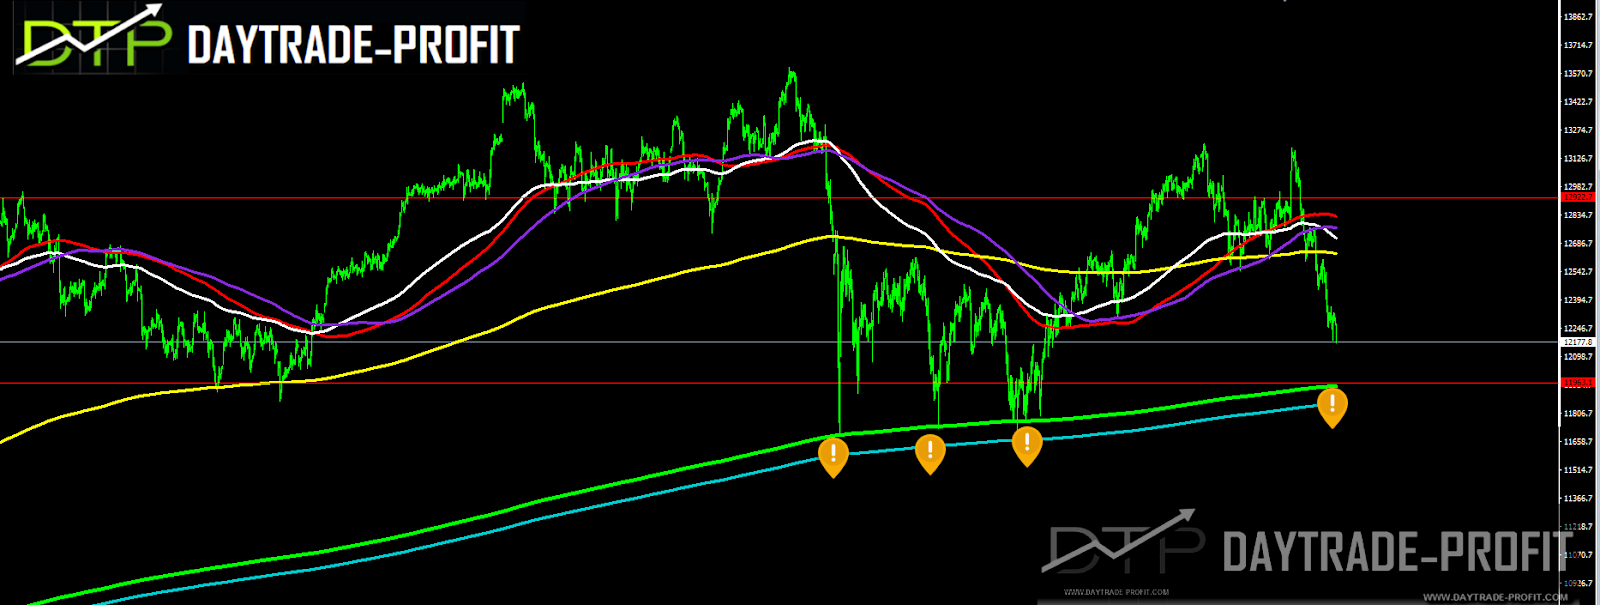 Have we seen the record high in the DAX 30 index for the